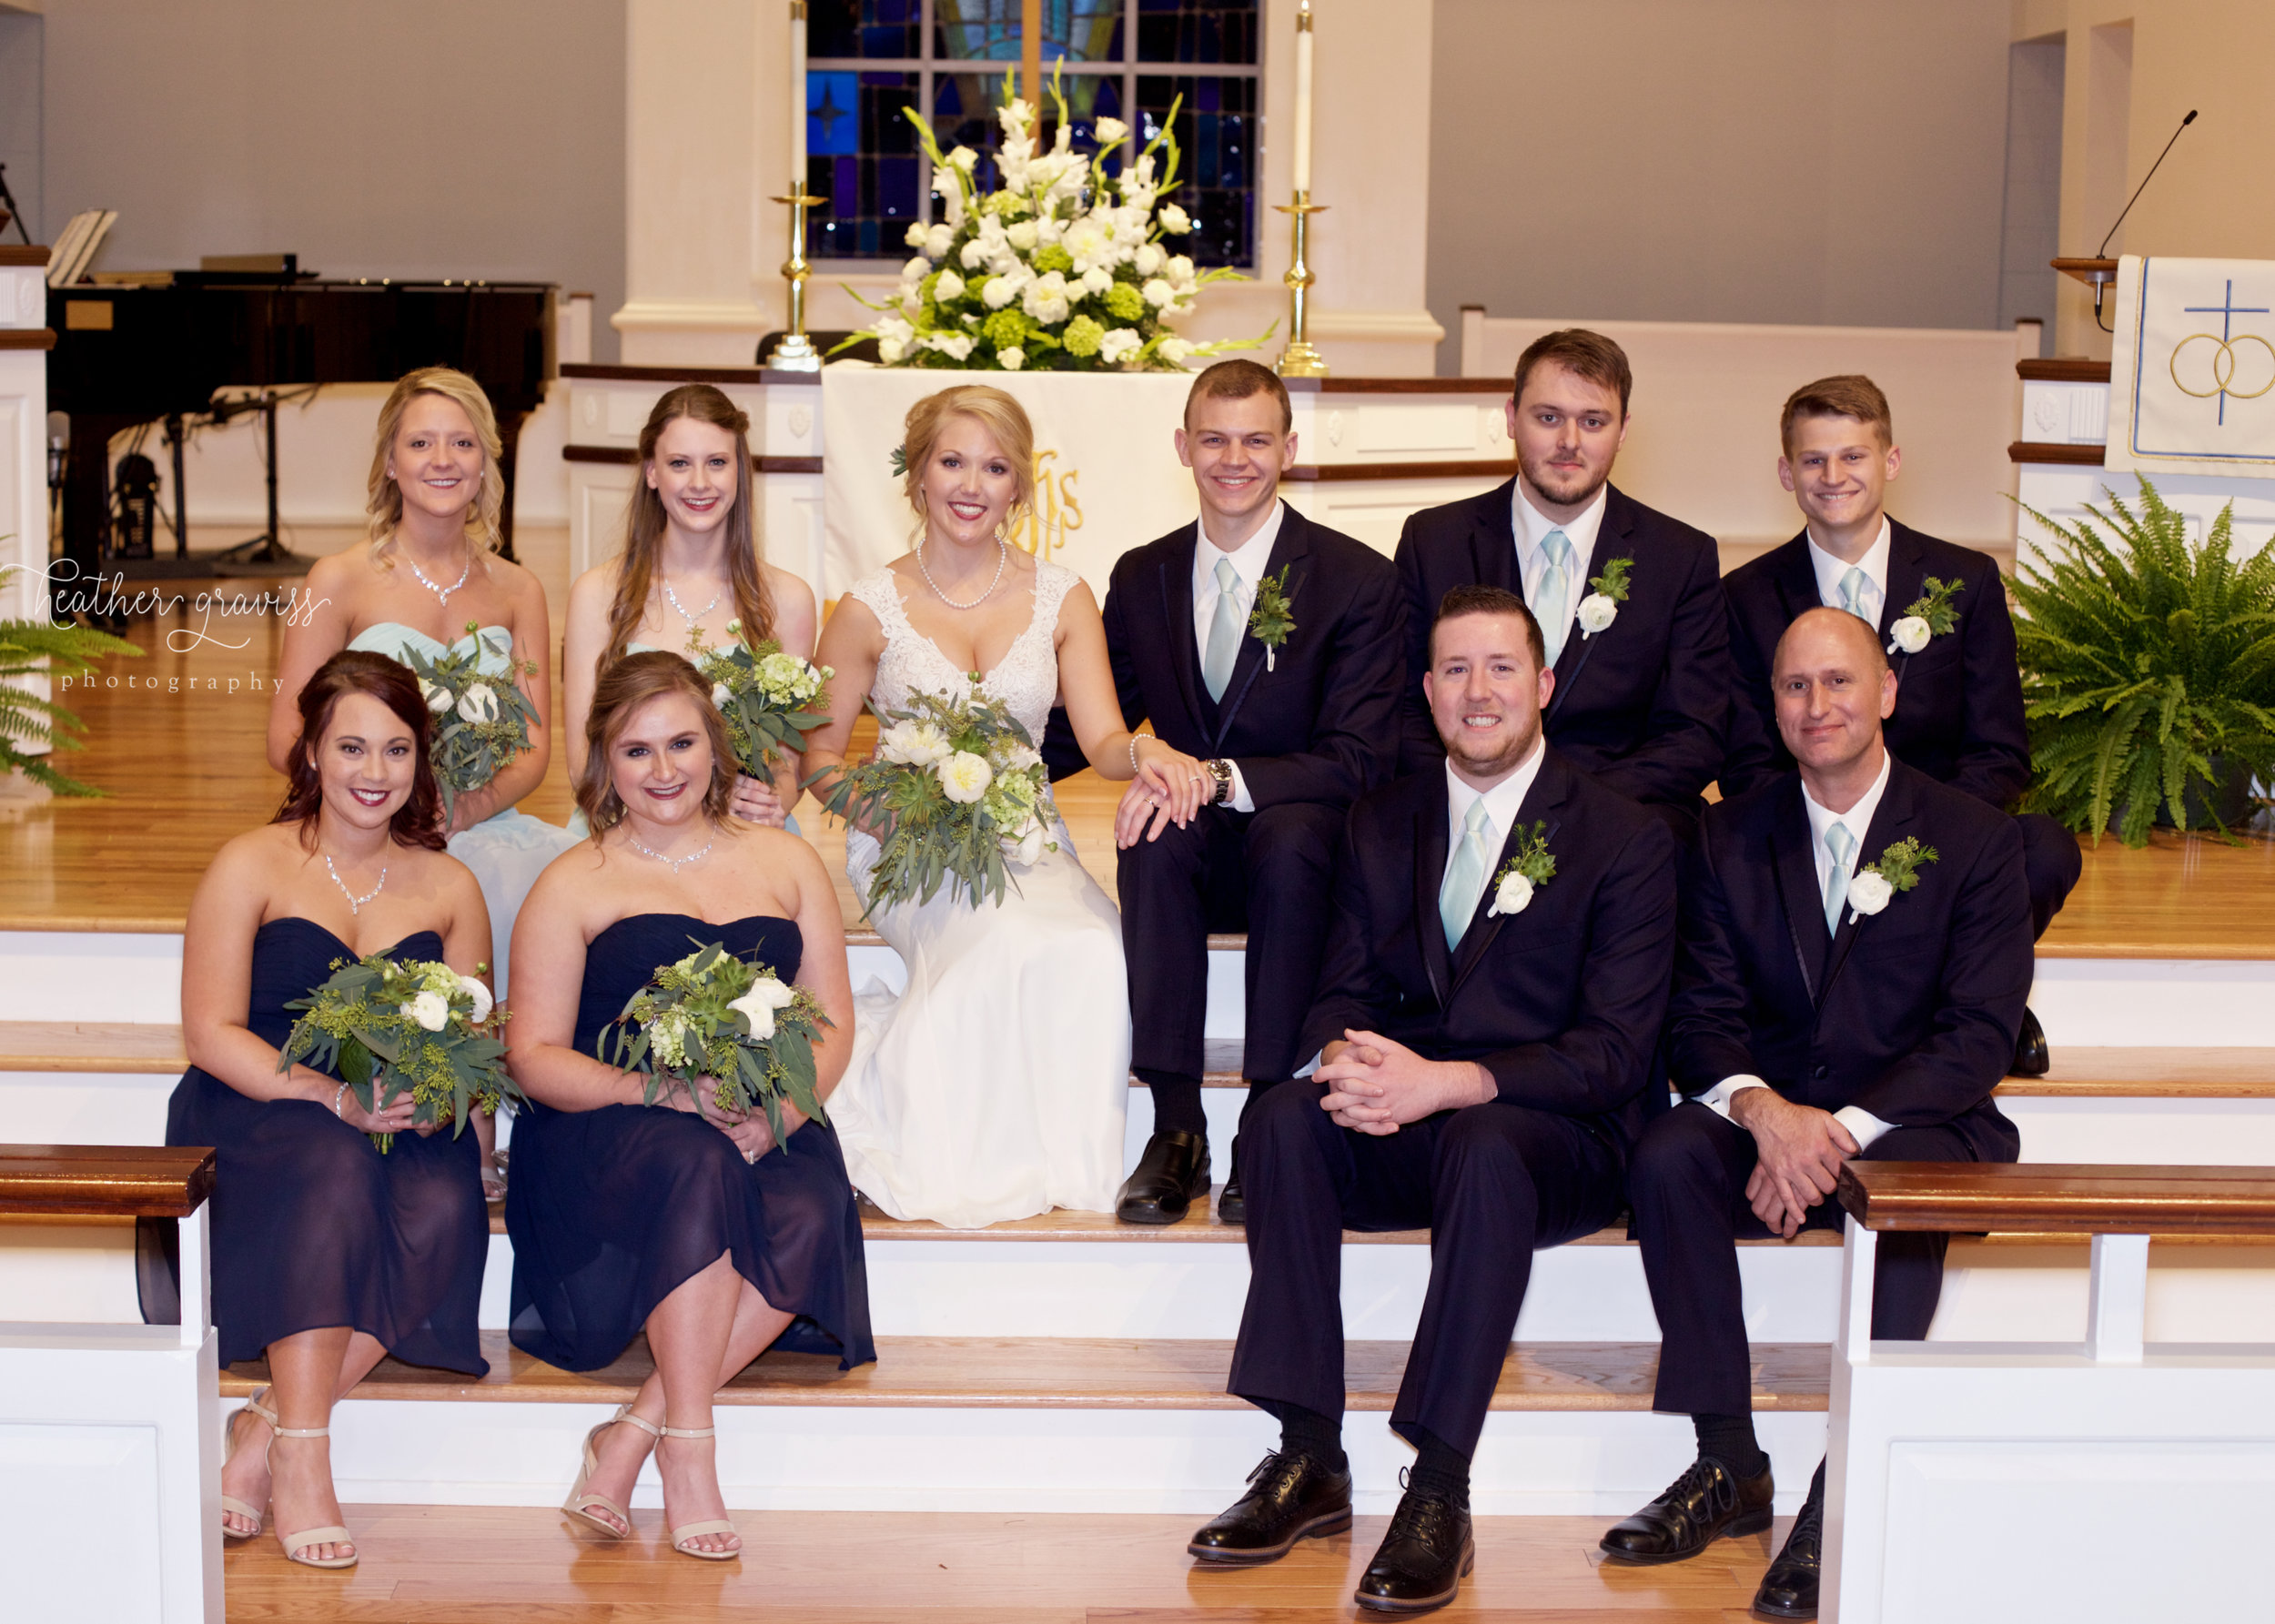 nashville middle tn wedding 099.jpg